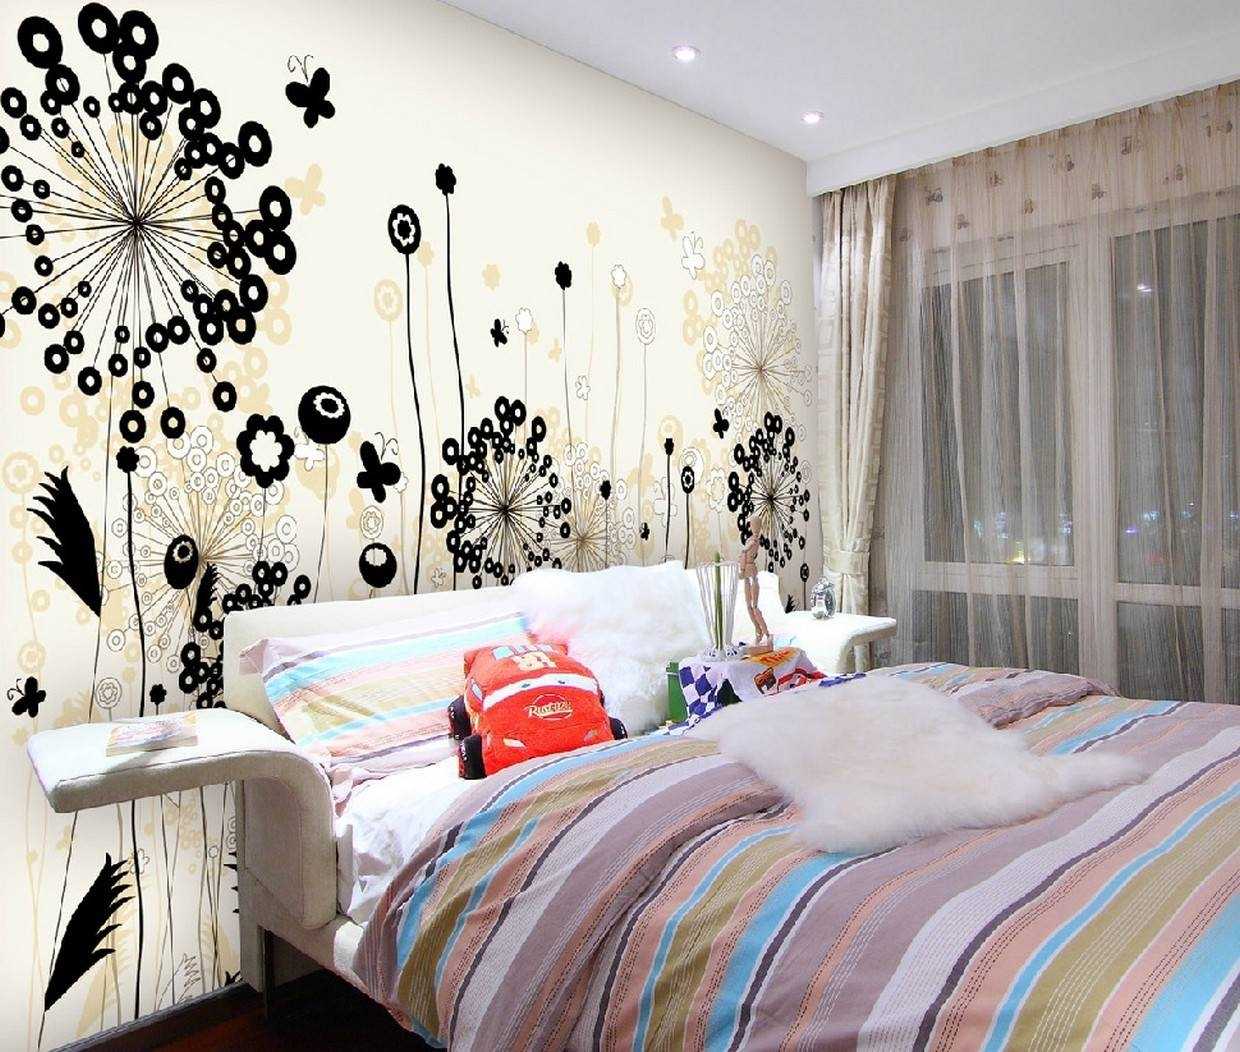 Cool Bedroom Paint Ideas Bendut Home Interior Exterior Wall Art Throughout Most Up To Date Teenage Wall Art (View 16 of 30)